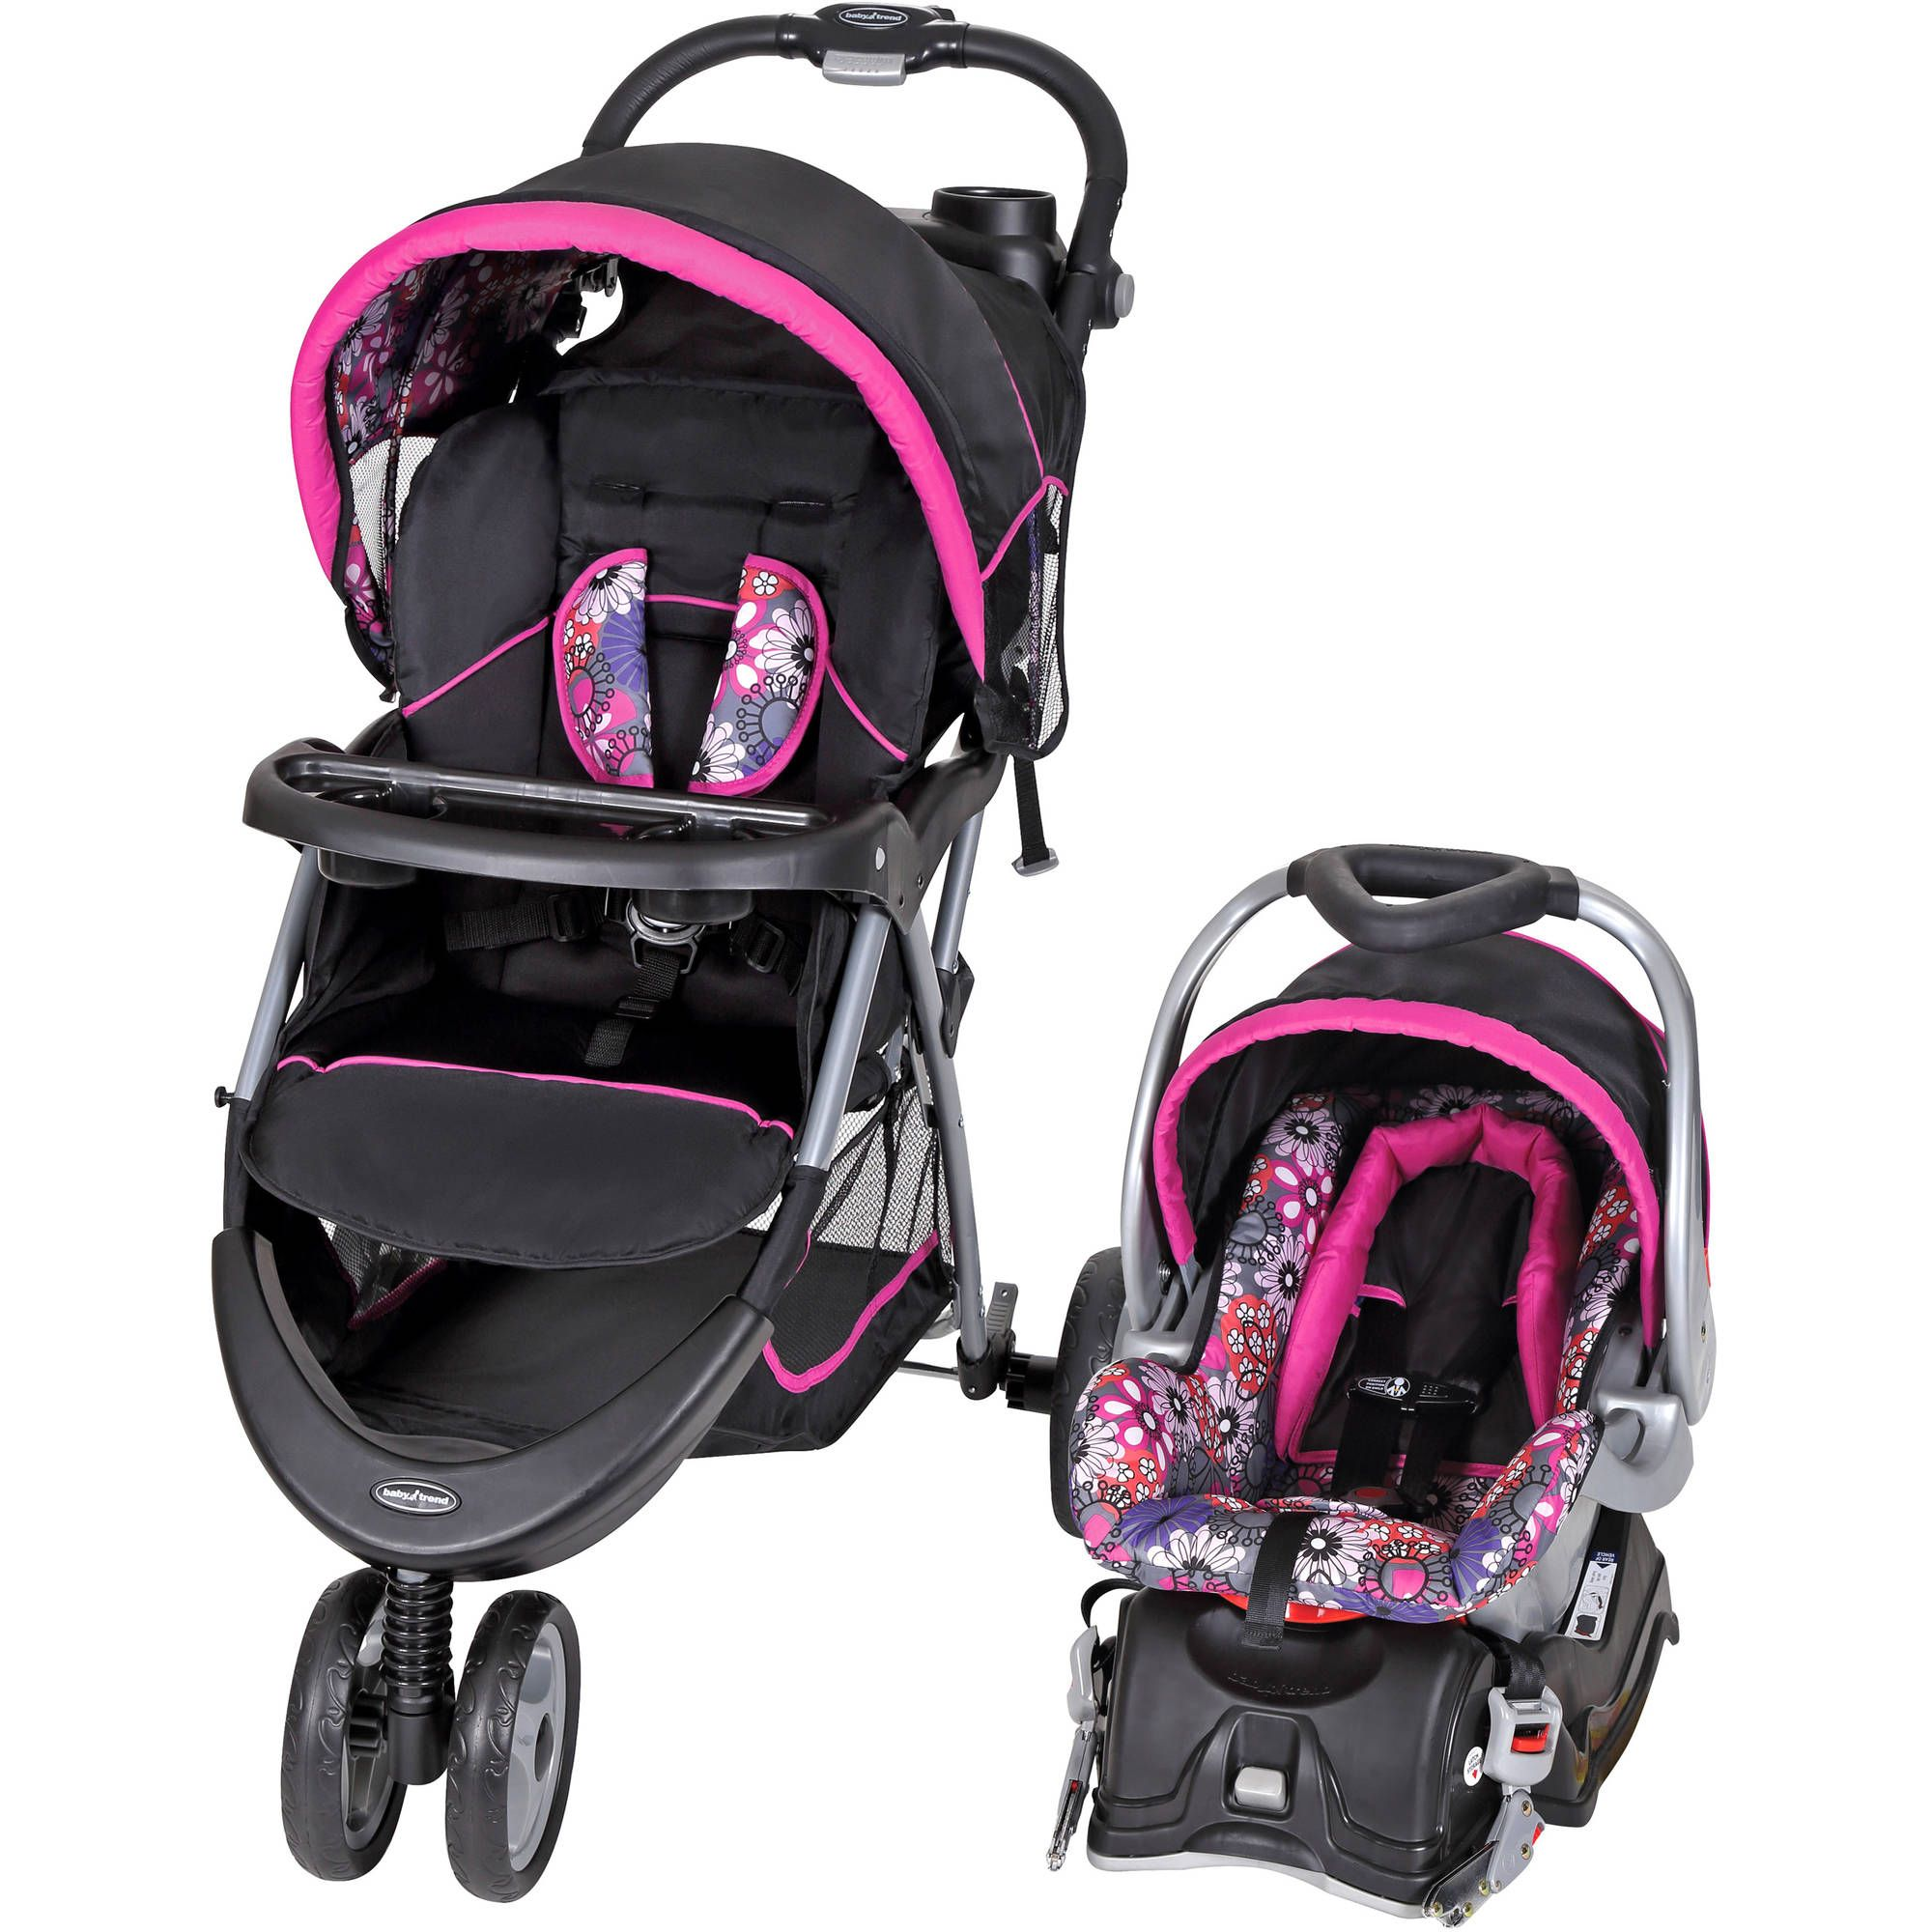 Baby Travel systems for baby, Baby car seats, Car seat